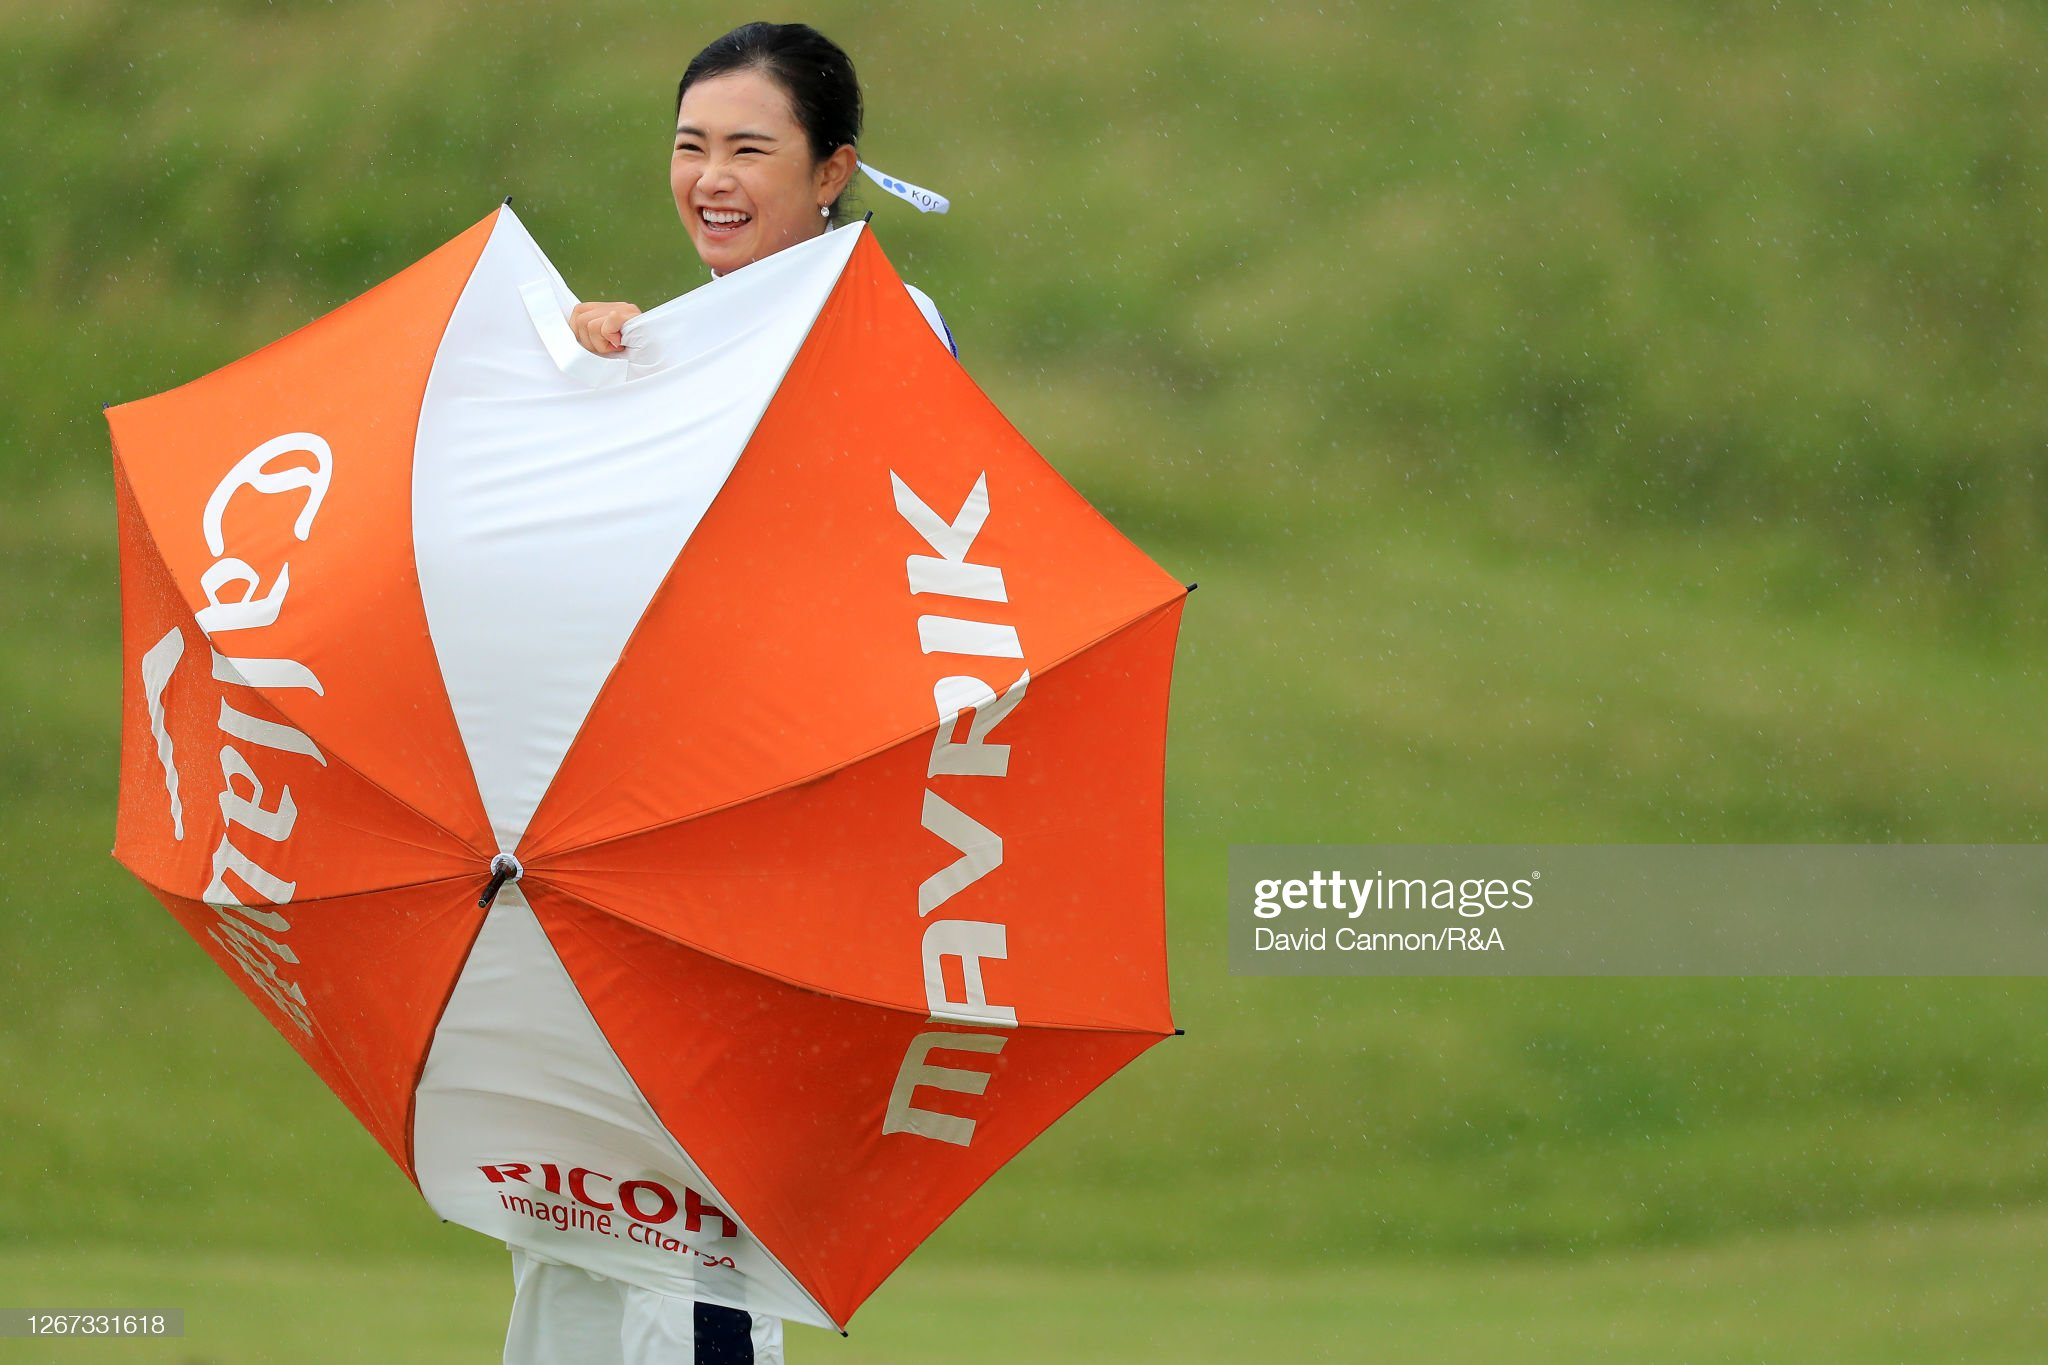 https://media.gettyimages.com/photos/yuikawamoto-of-japan-struggles-to-cope-with-the-strong-winds-on-the-picture-id1267331618?s=2048x2048